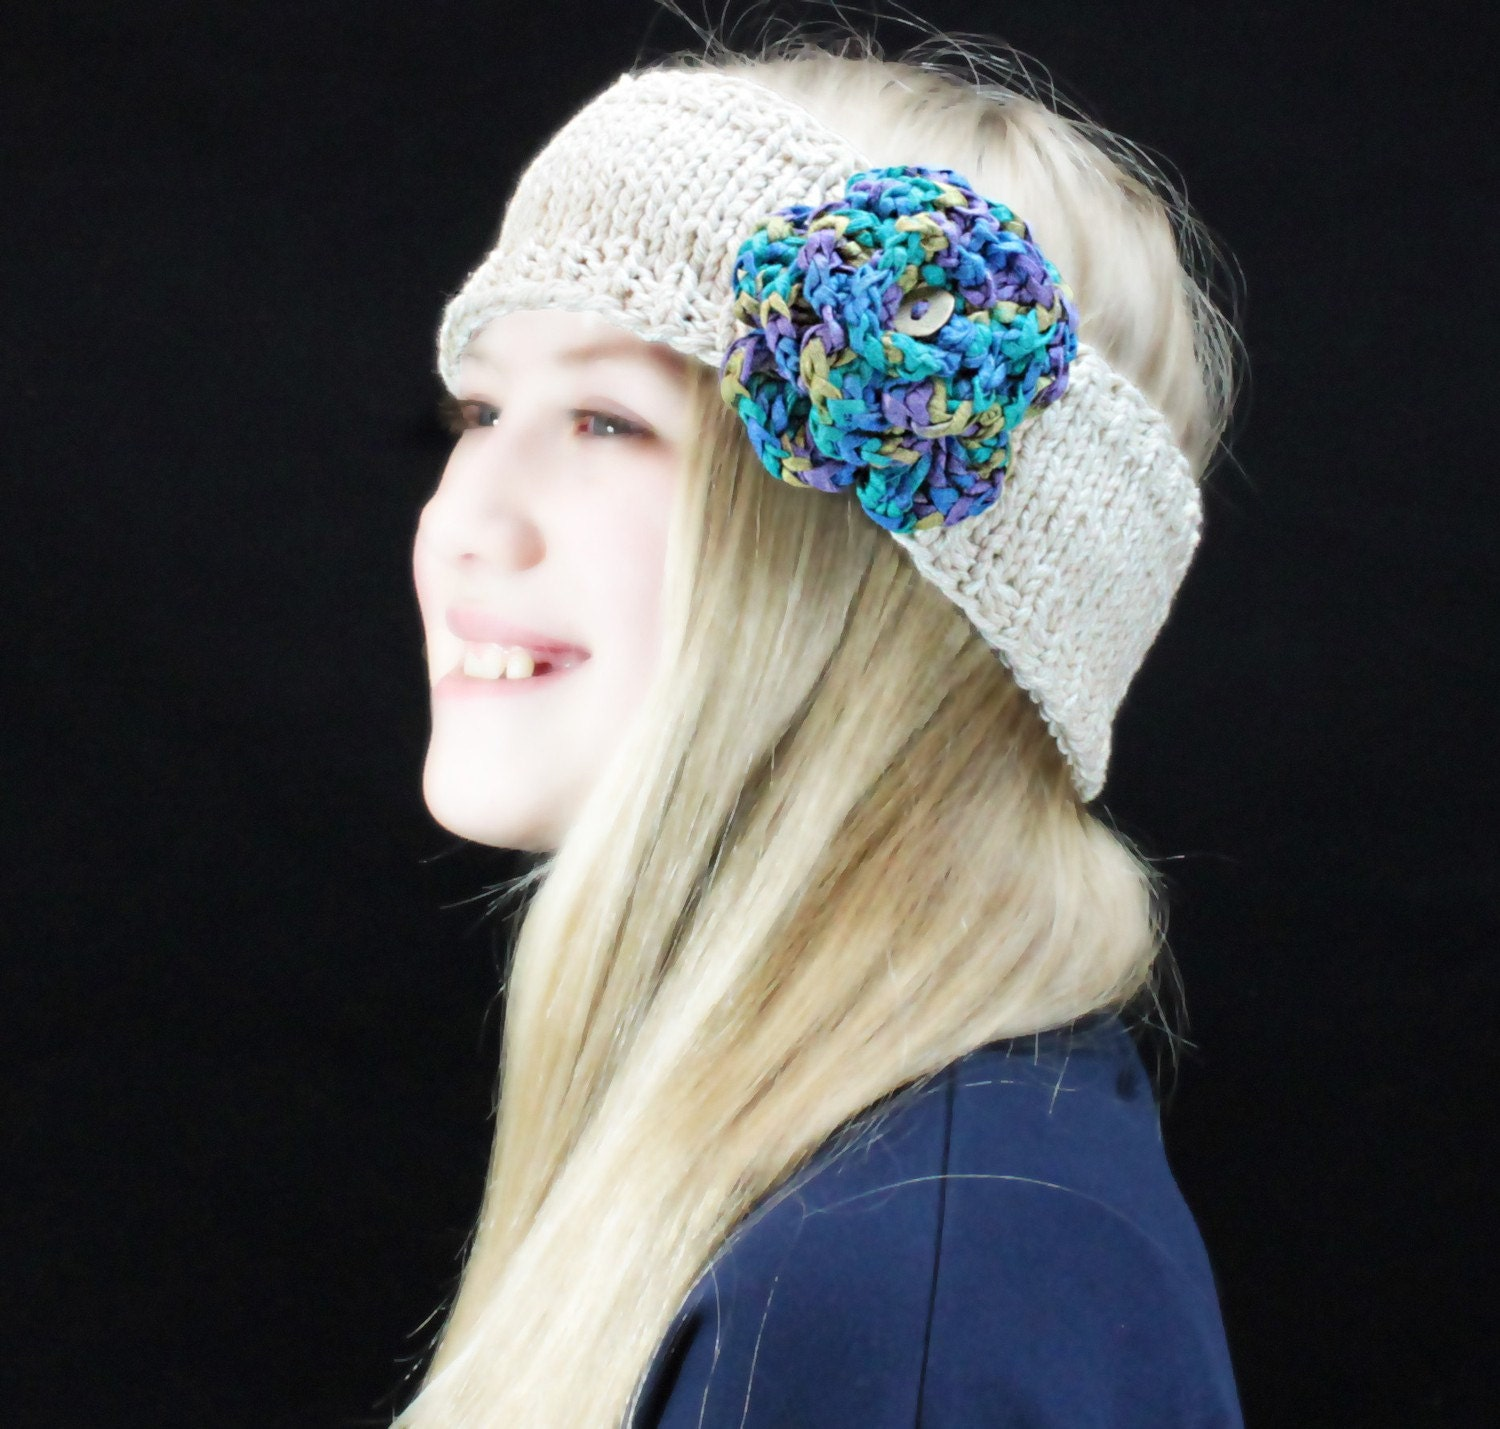 Eco Friendly Organic Cotton and Bamboo Headband - Medium - Free Shipping to USA